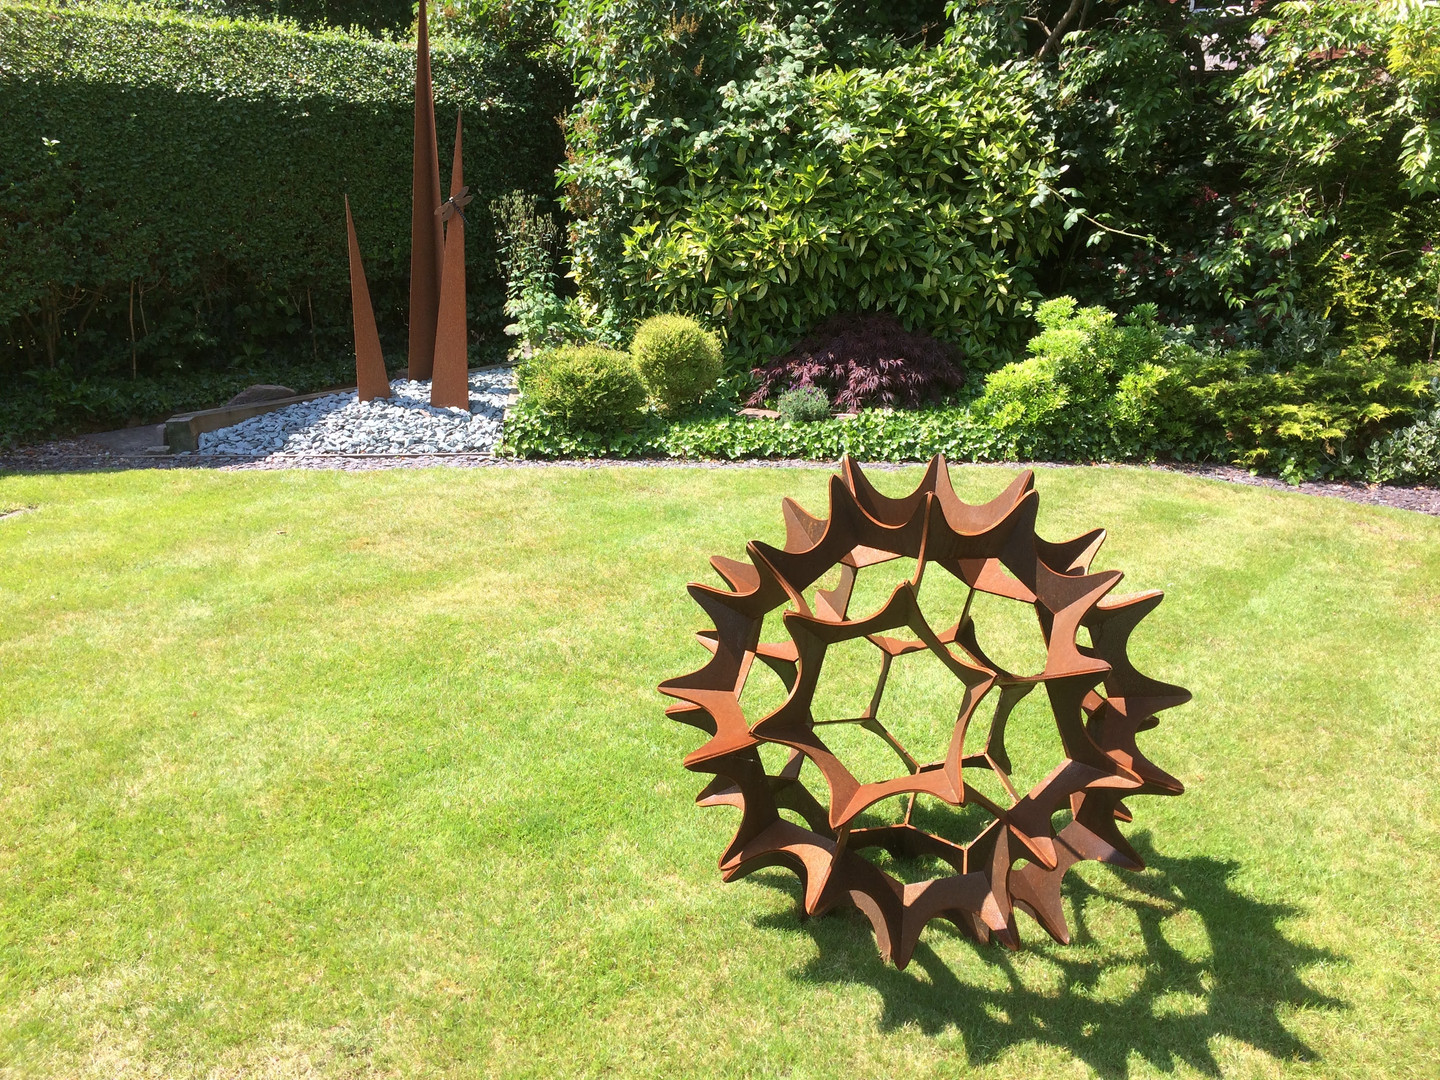 Medium Virus.jpg Corten Steel fabricated